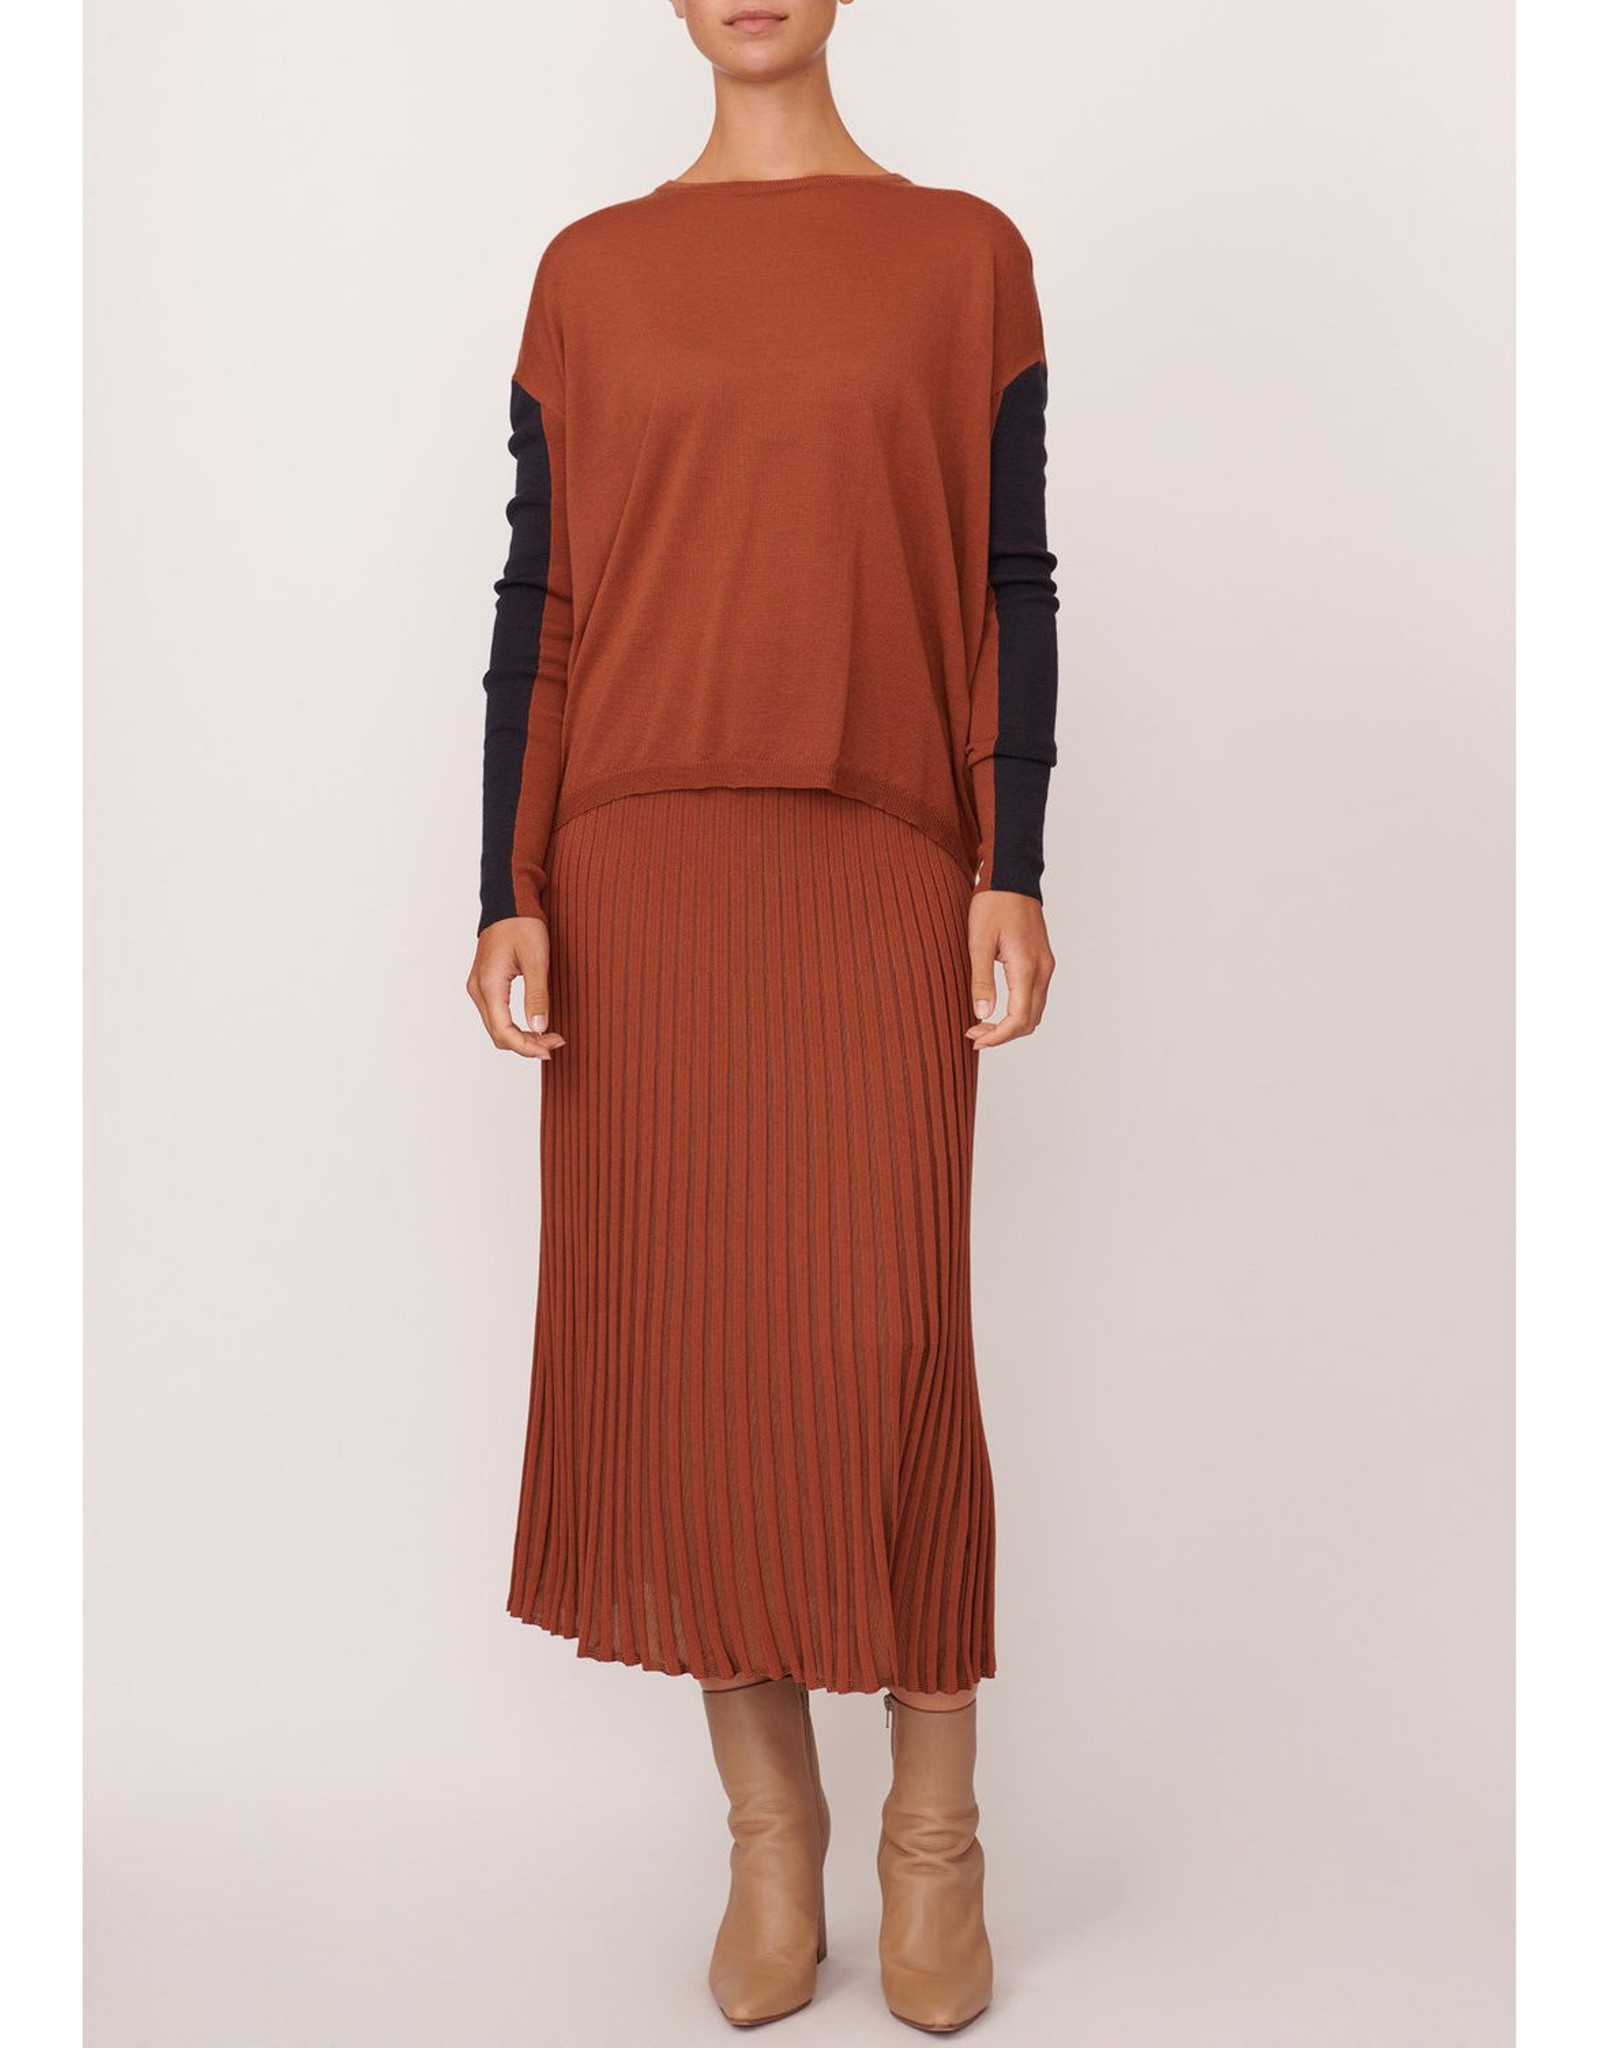 SALE - POL SCOPE RIBBED SKIRT RUST